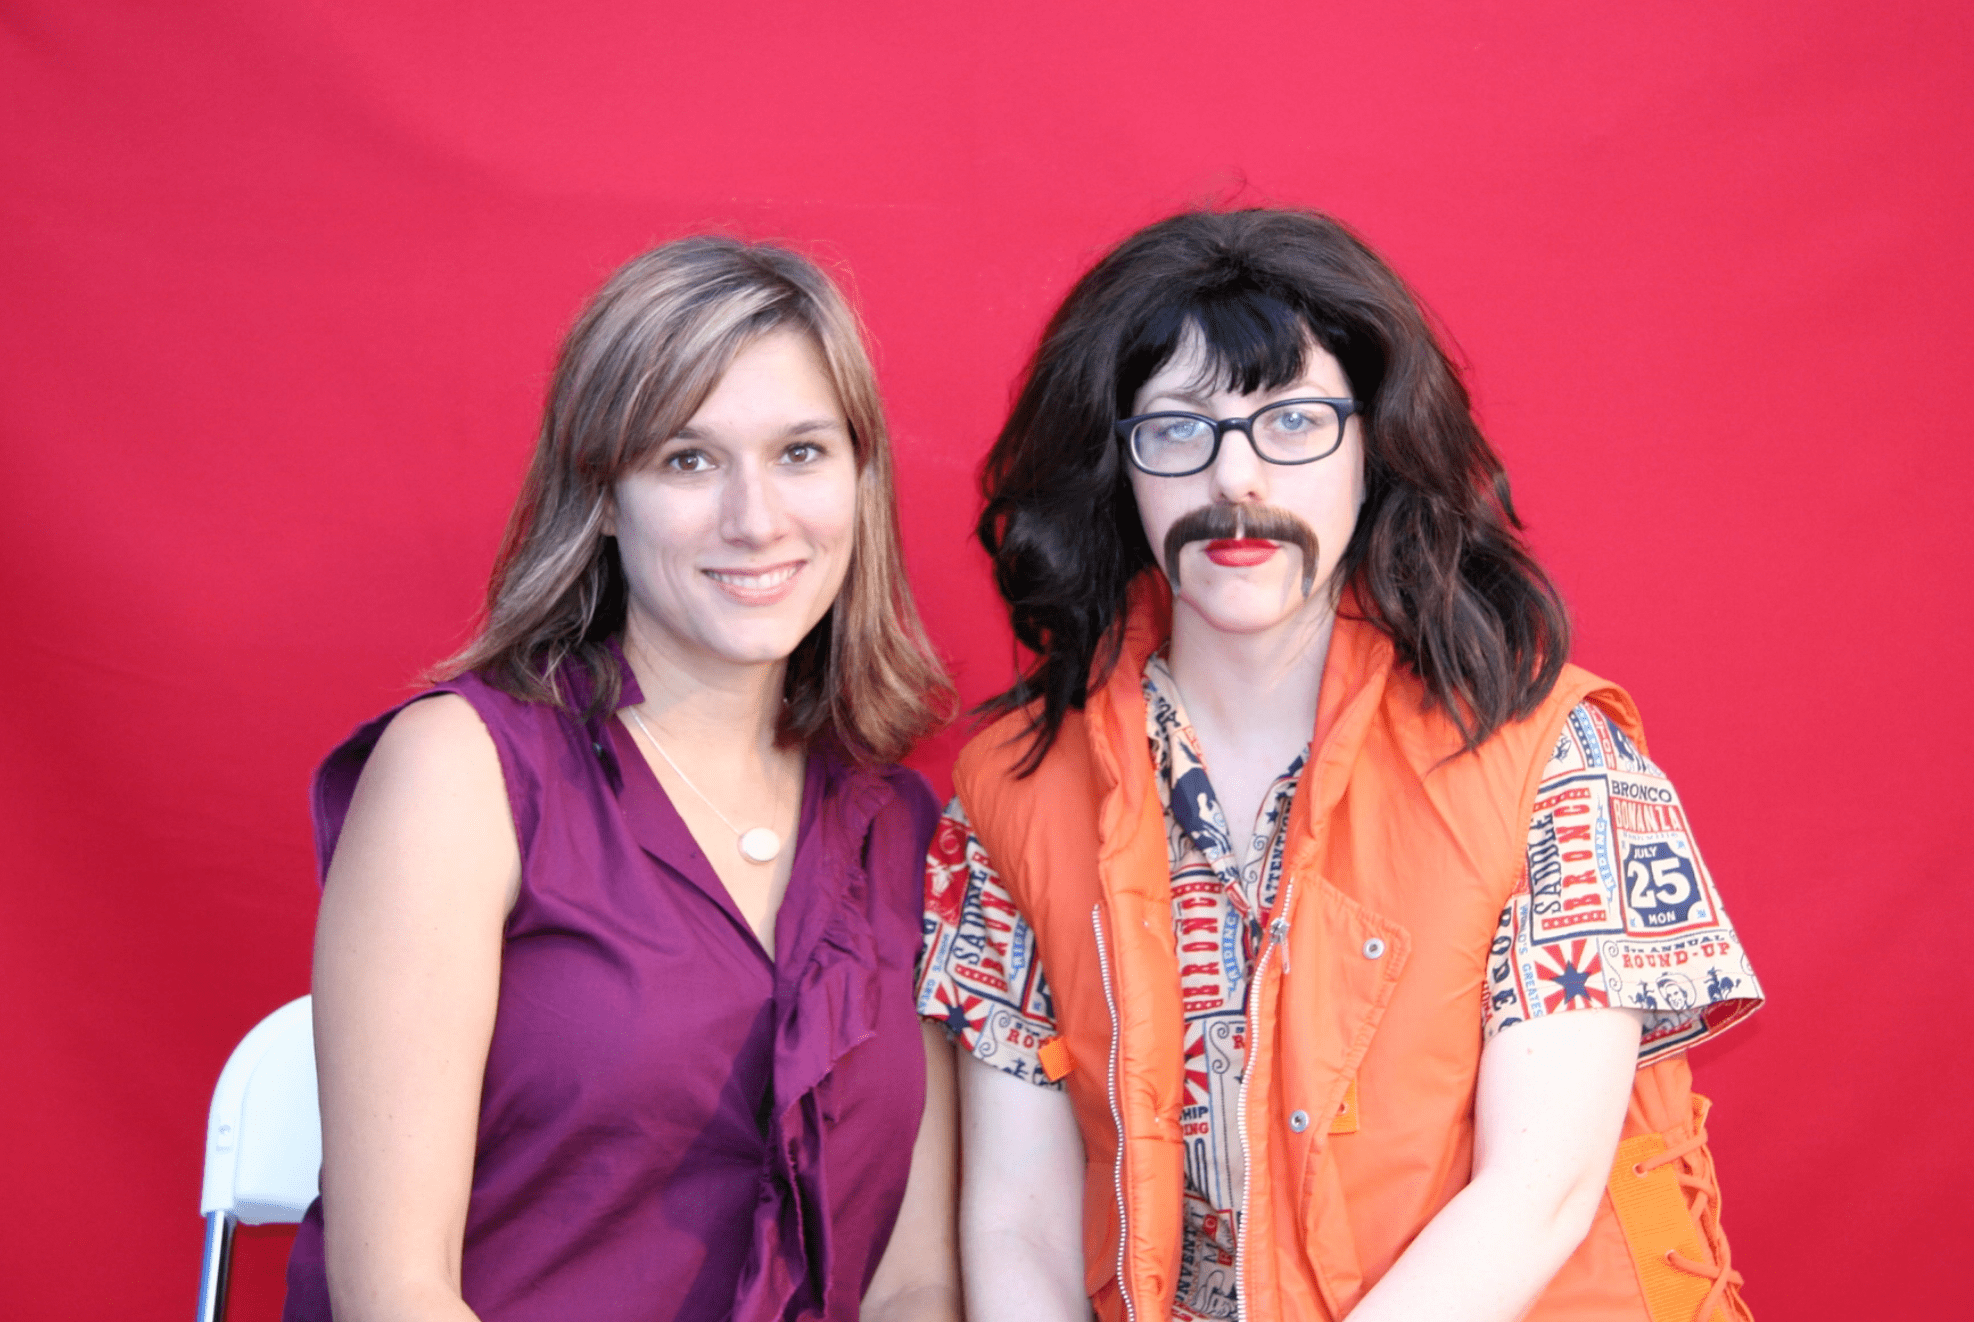 Jennifer McCoy and a woman dressed as Kevin McCoy sit in front of a red background.